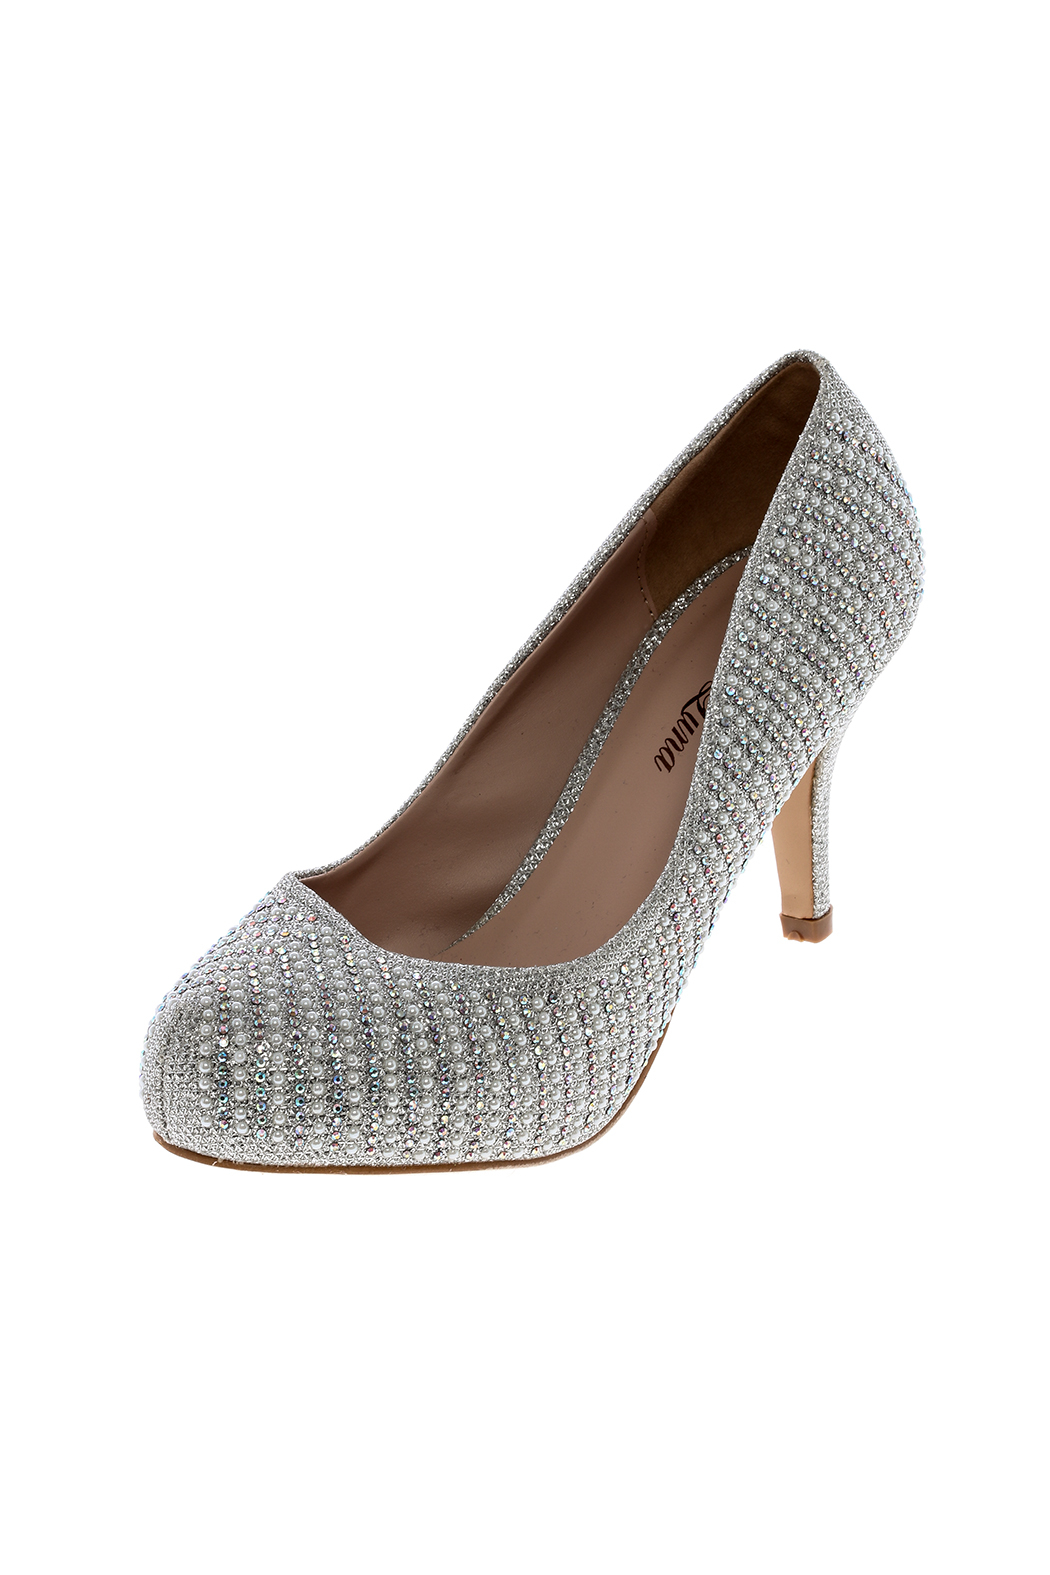 Bella Luna by Springland Footwear Round Silver Pump - Front Cropped Image